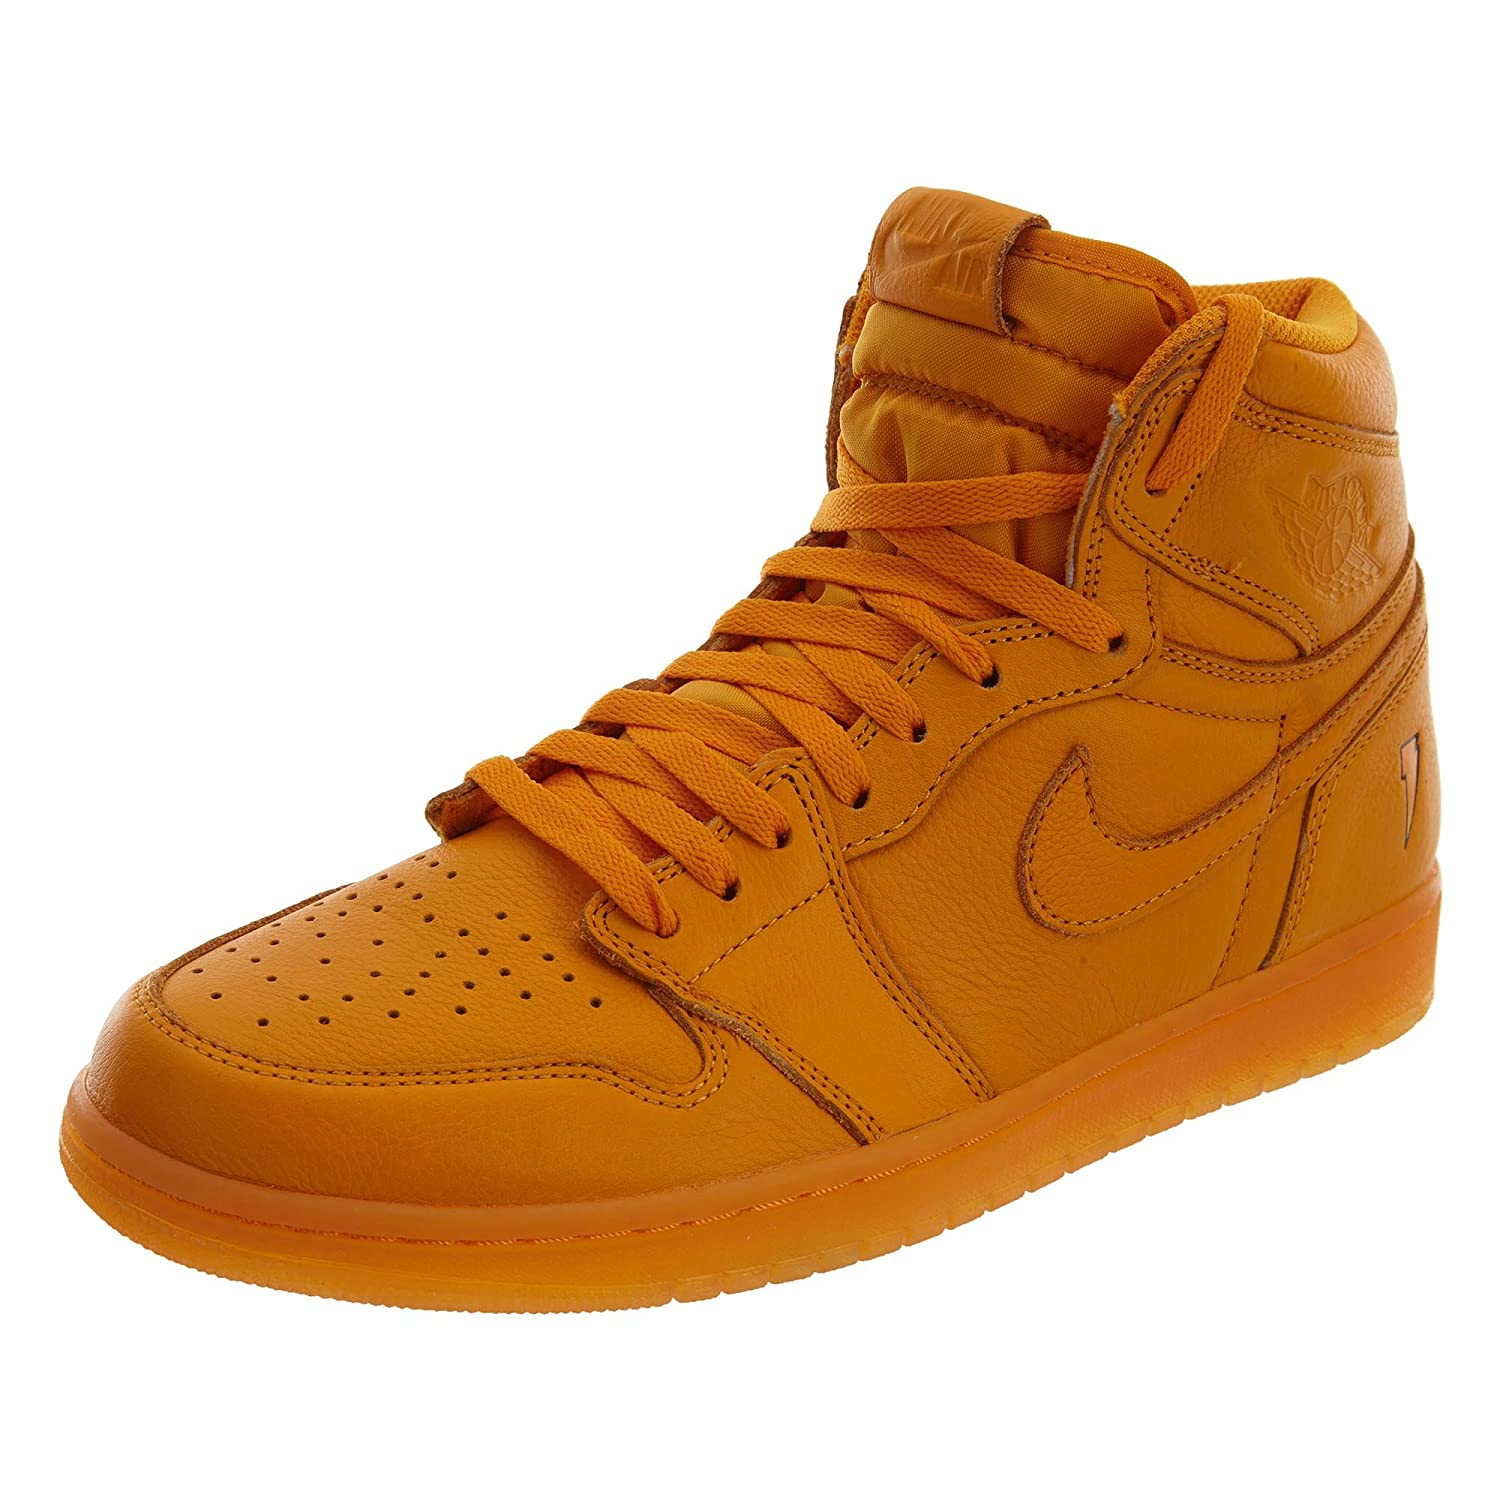 417782ca4f8 Amazon.com | Nike Air Jordan 1 Retro Hi Og Gatorade Orange Peel Mens |  Basketball